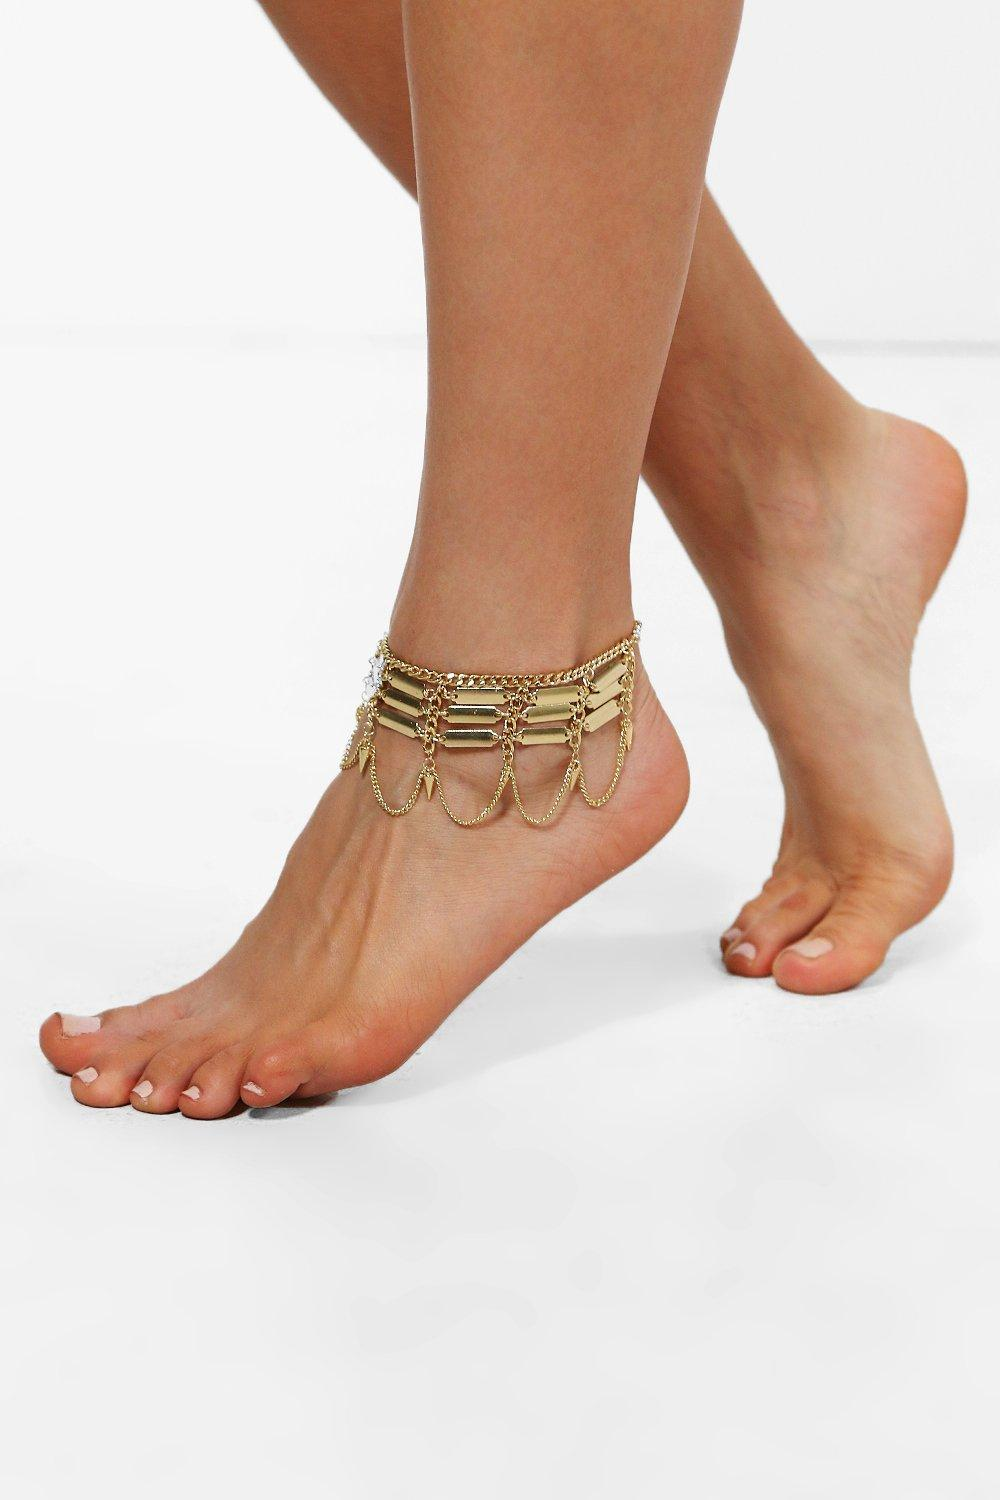 Boutique Layered Chain Detail Anklet  gold